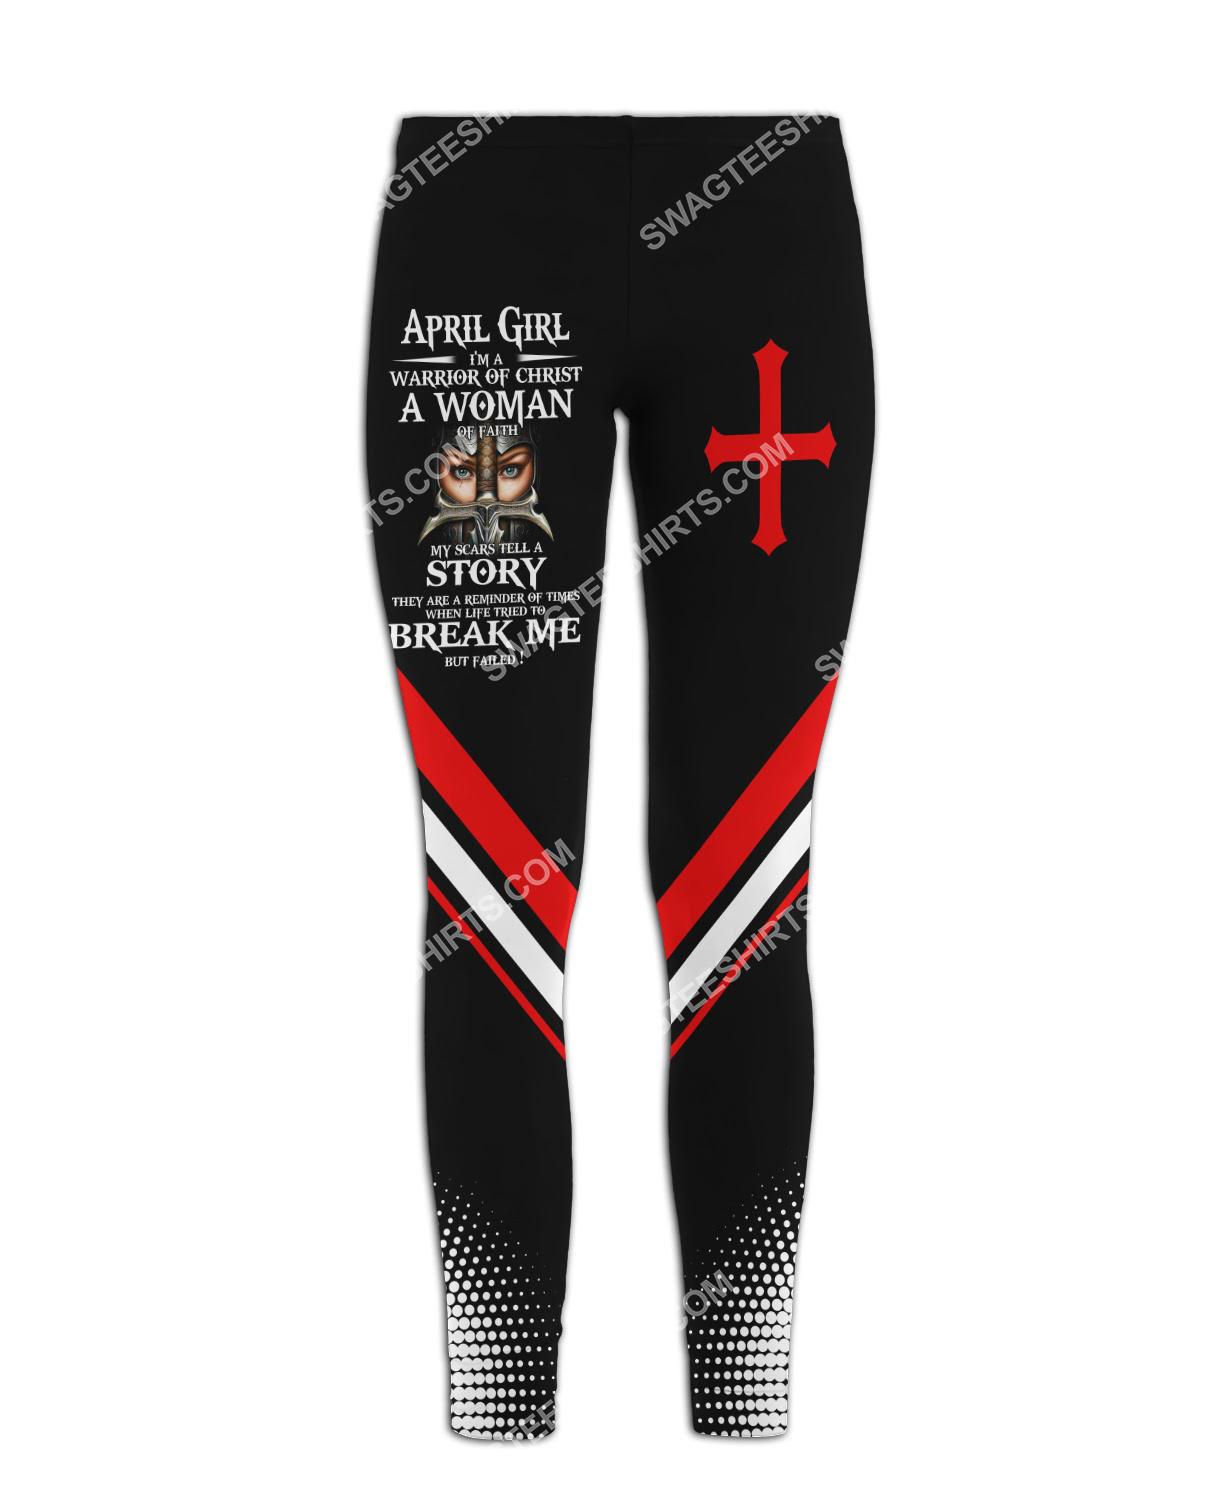 april girl i'm a warrior of Christ a woman of faith all over printed legging 1